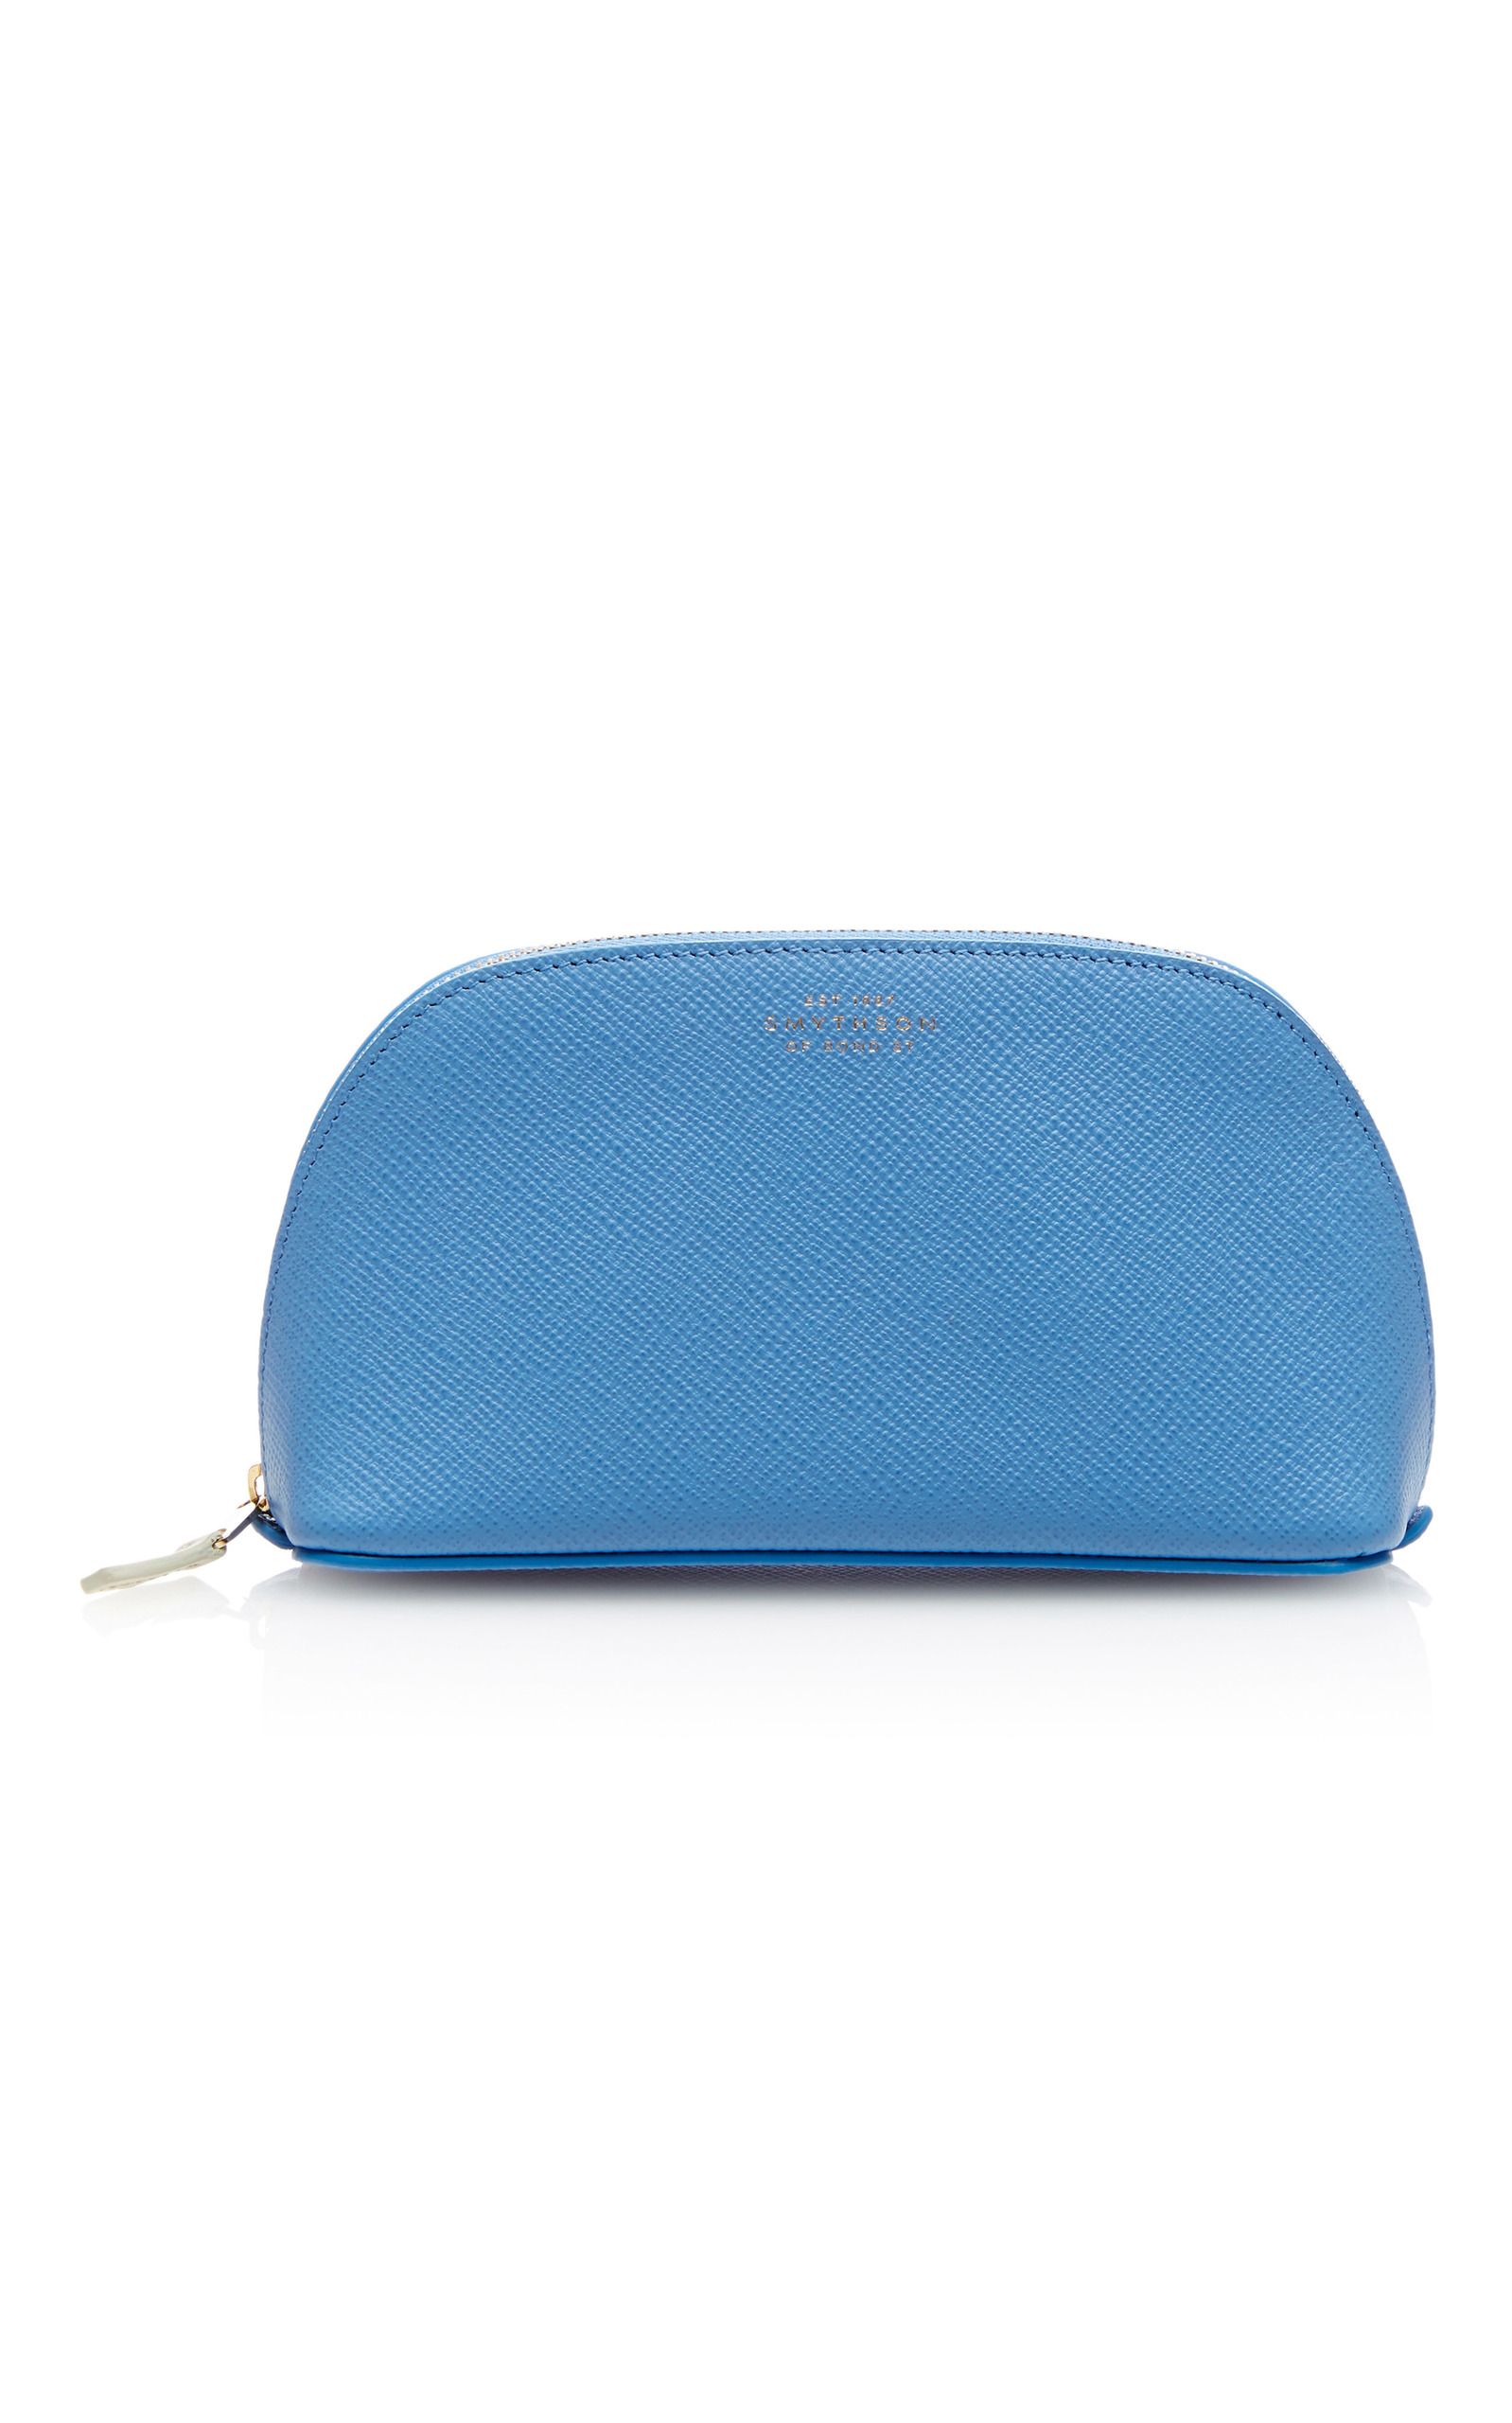 Panama Cosmetic Case - Blue